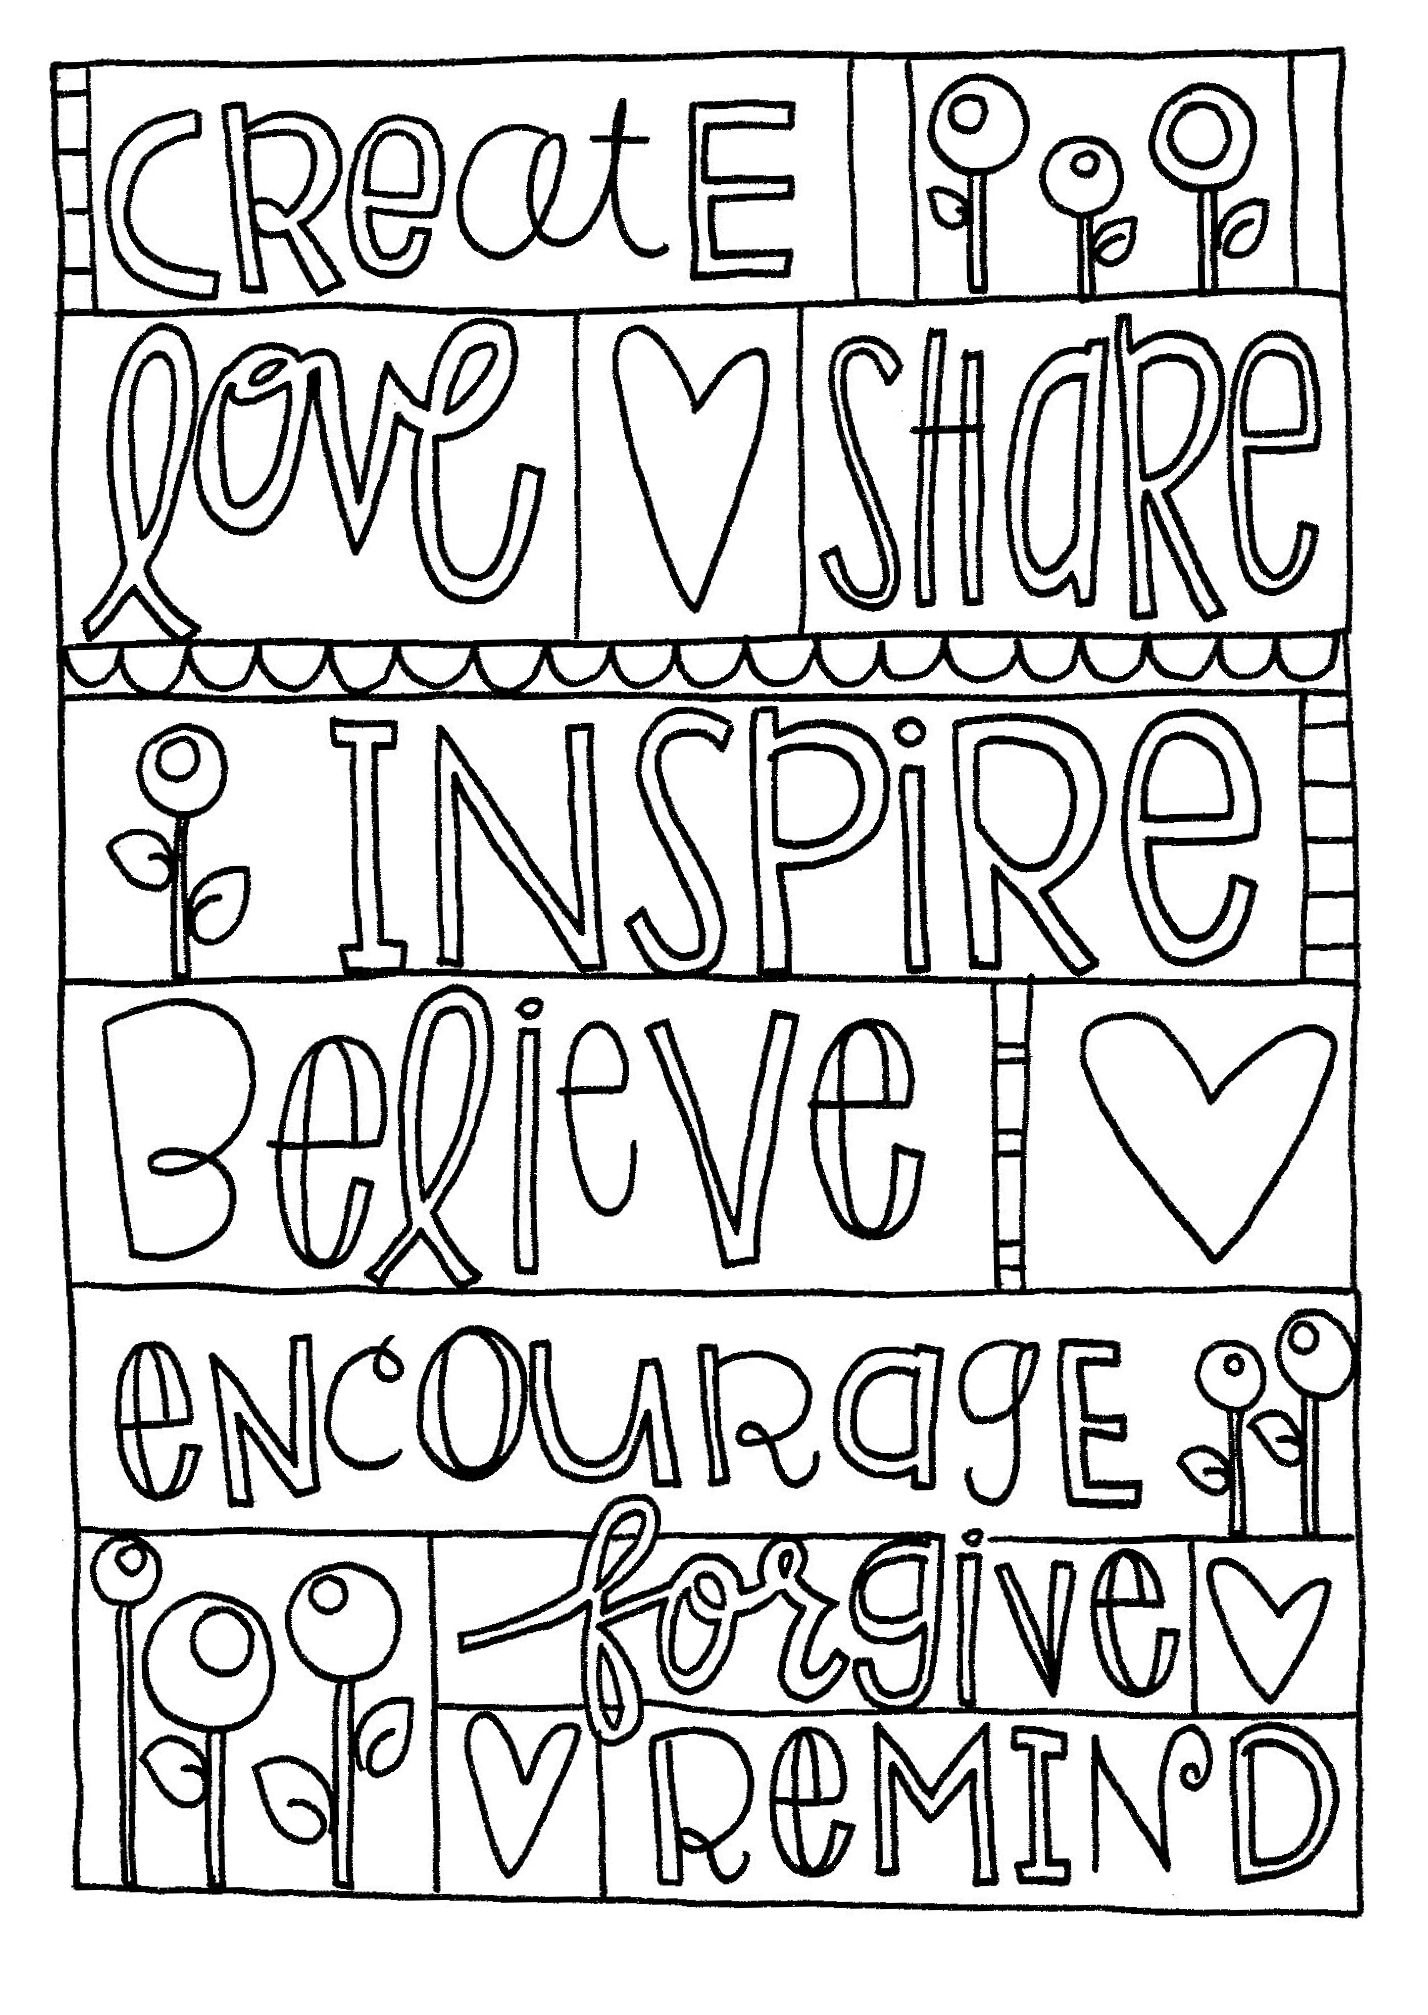 love one another coloring page image result for free love one another lds coloring coloring love page one another